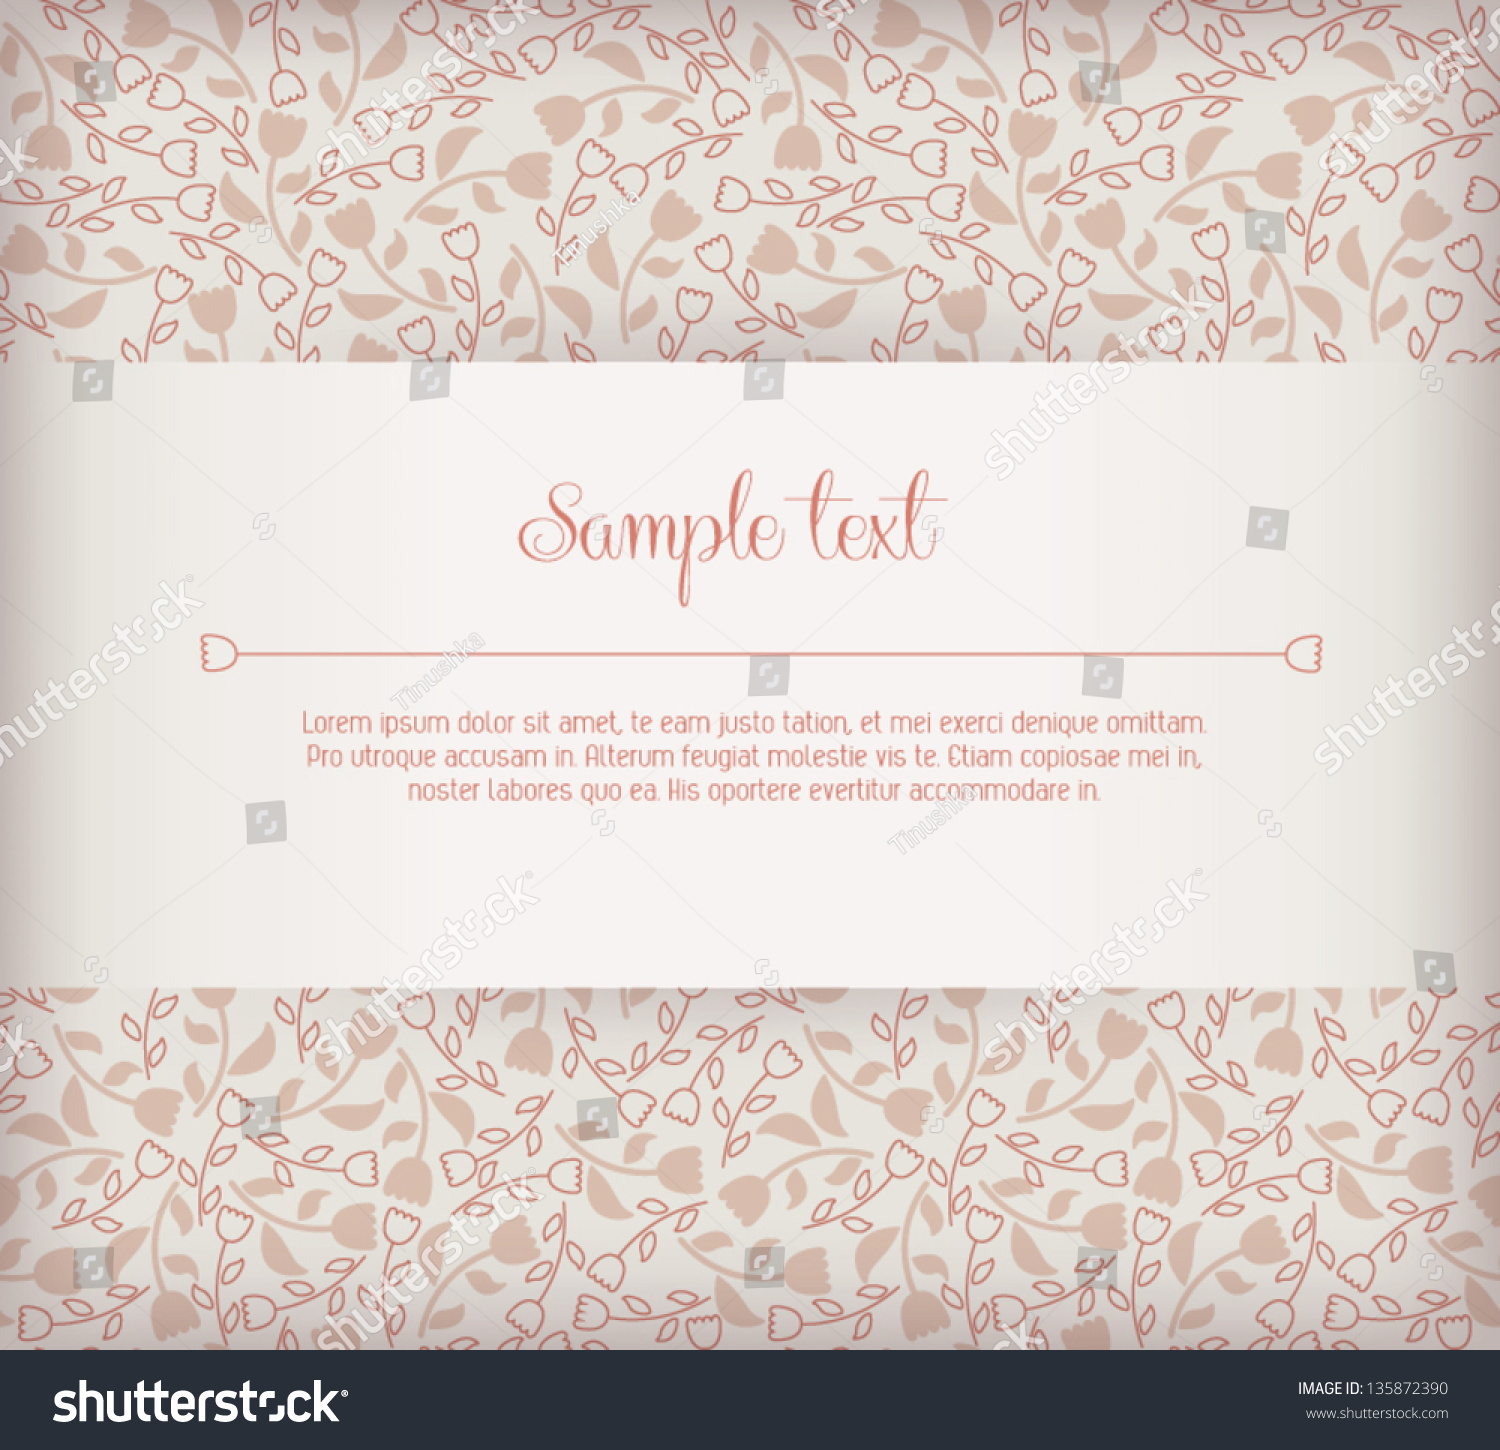 Elegant Wedding Invitation Card Sample Text Stock Vector 135872390 ...